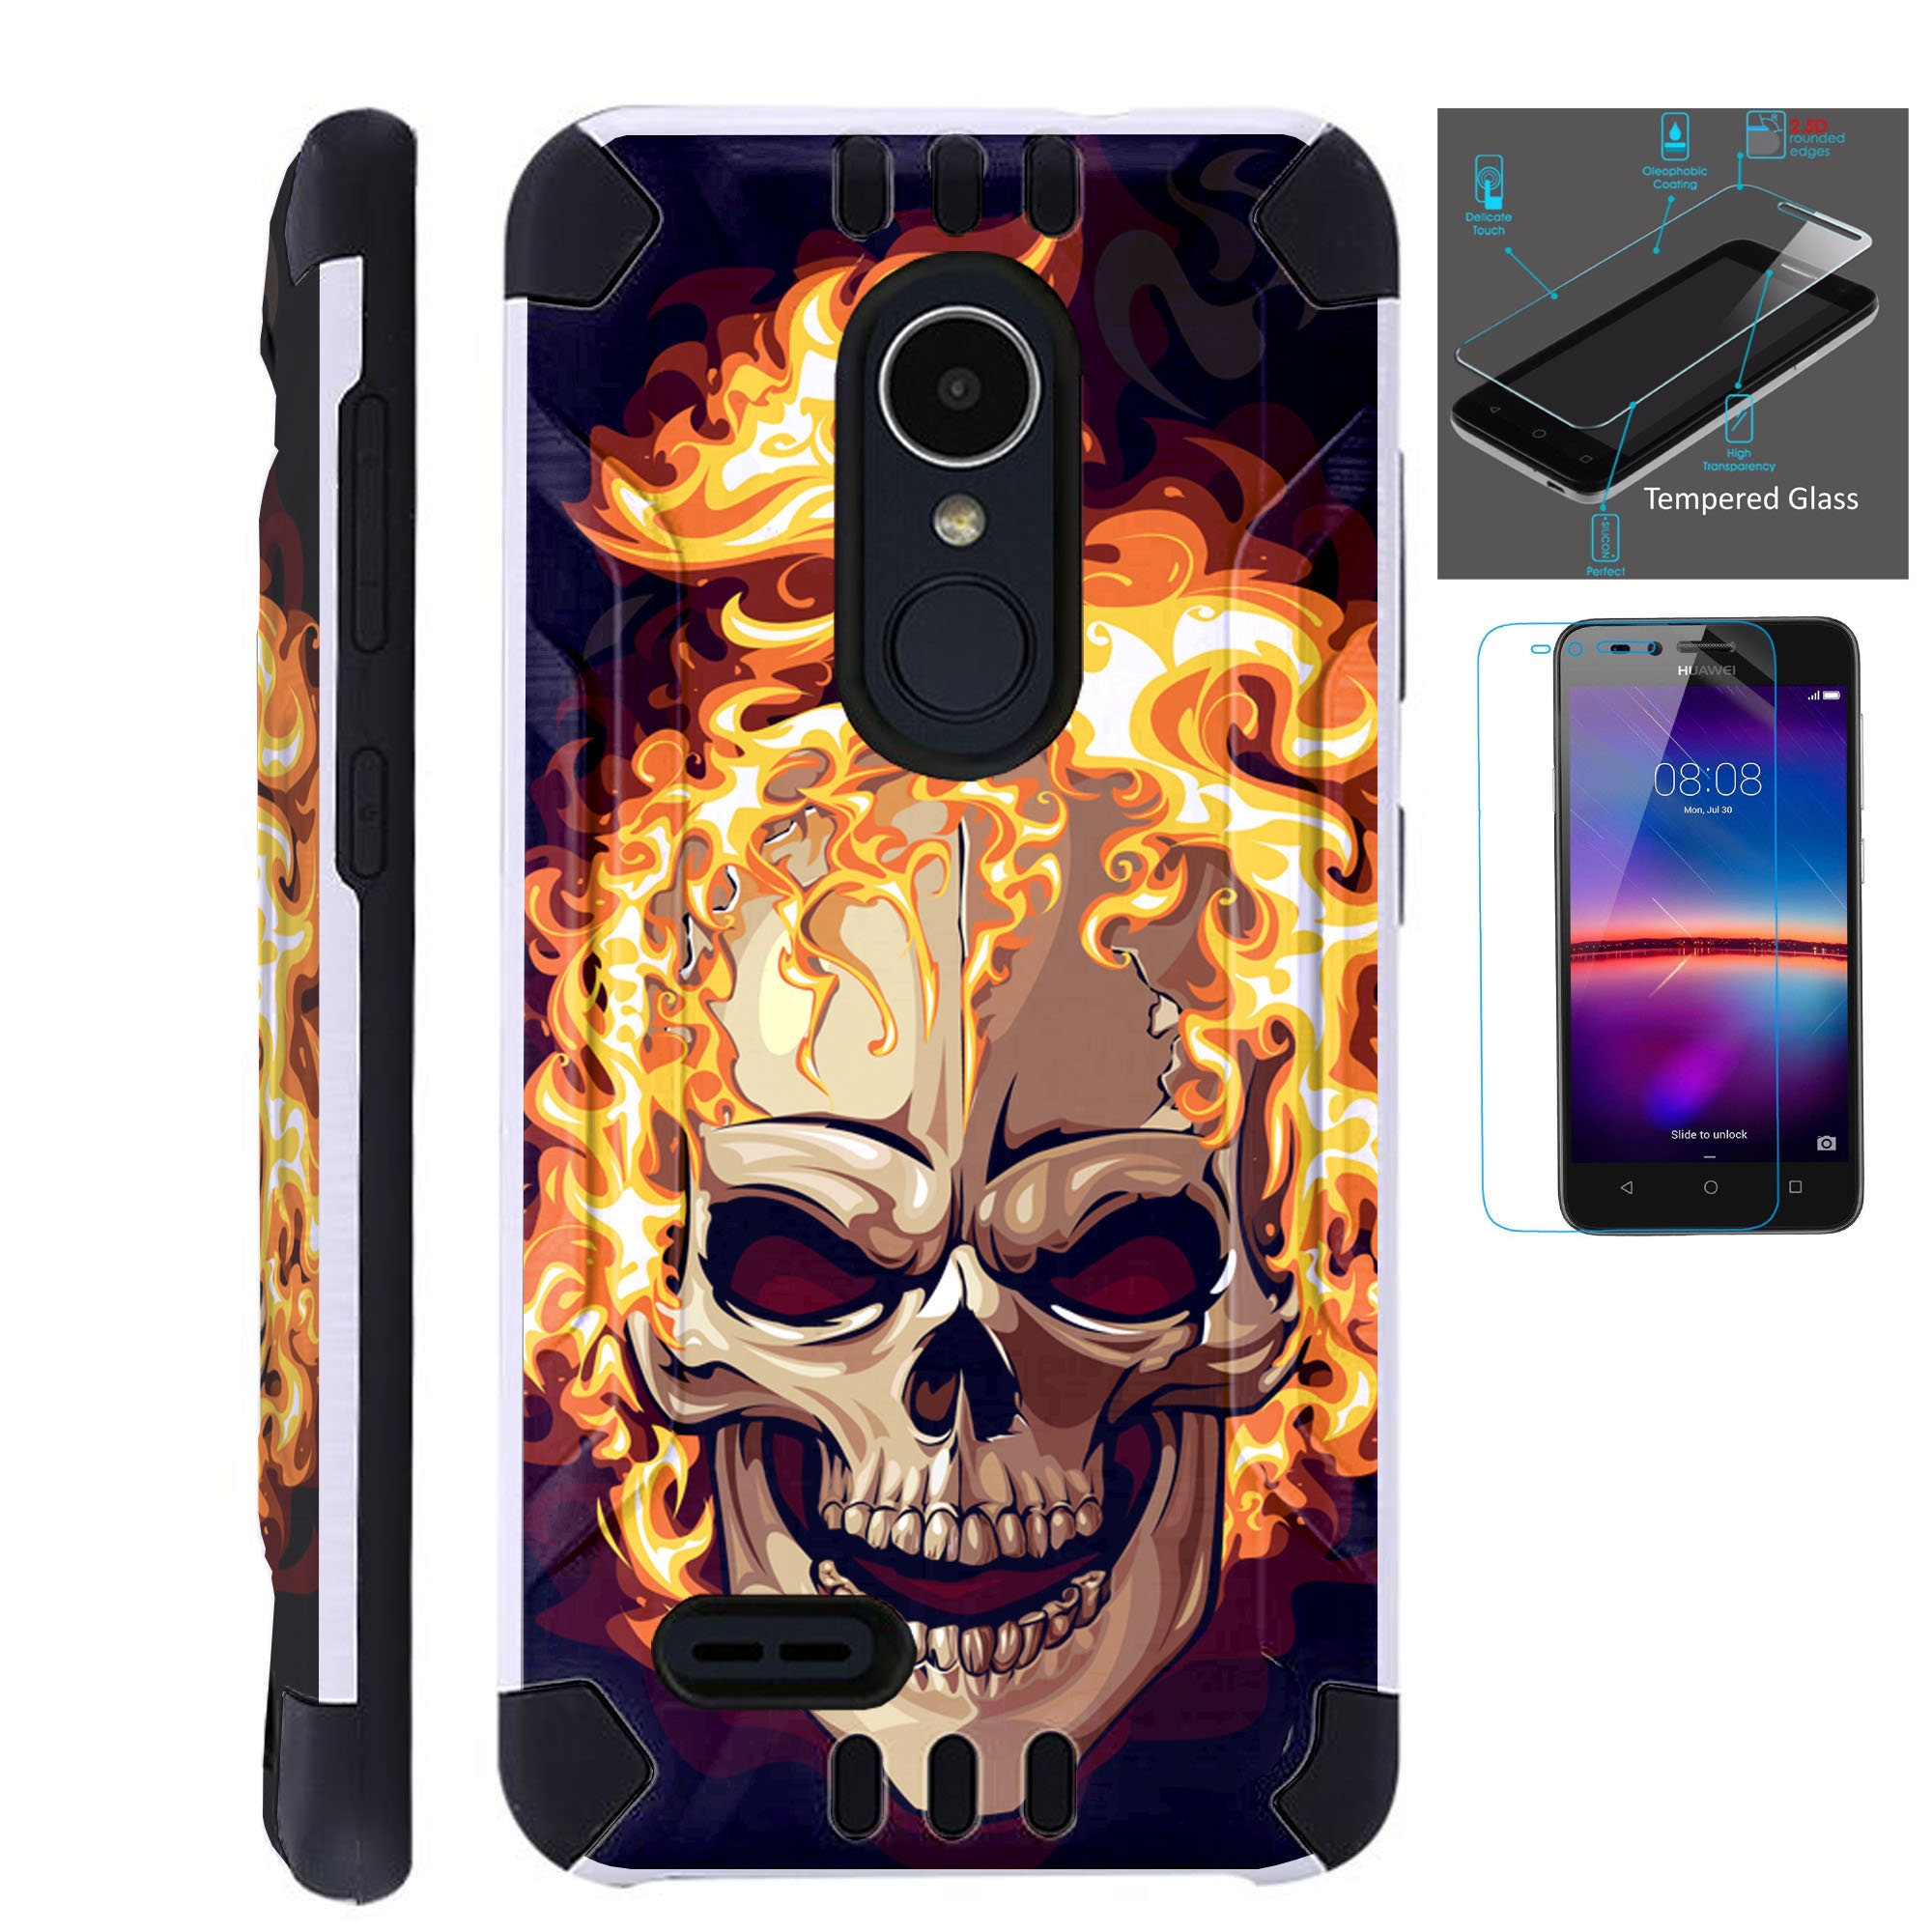 Combat Guard + Tempered Glass For Lg Stylo 3 4 Plus Fiesta 2 Lte Aristo 2  K30 Hybrid Dual Layer Armor Cover Slim Case SKULL FIRE